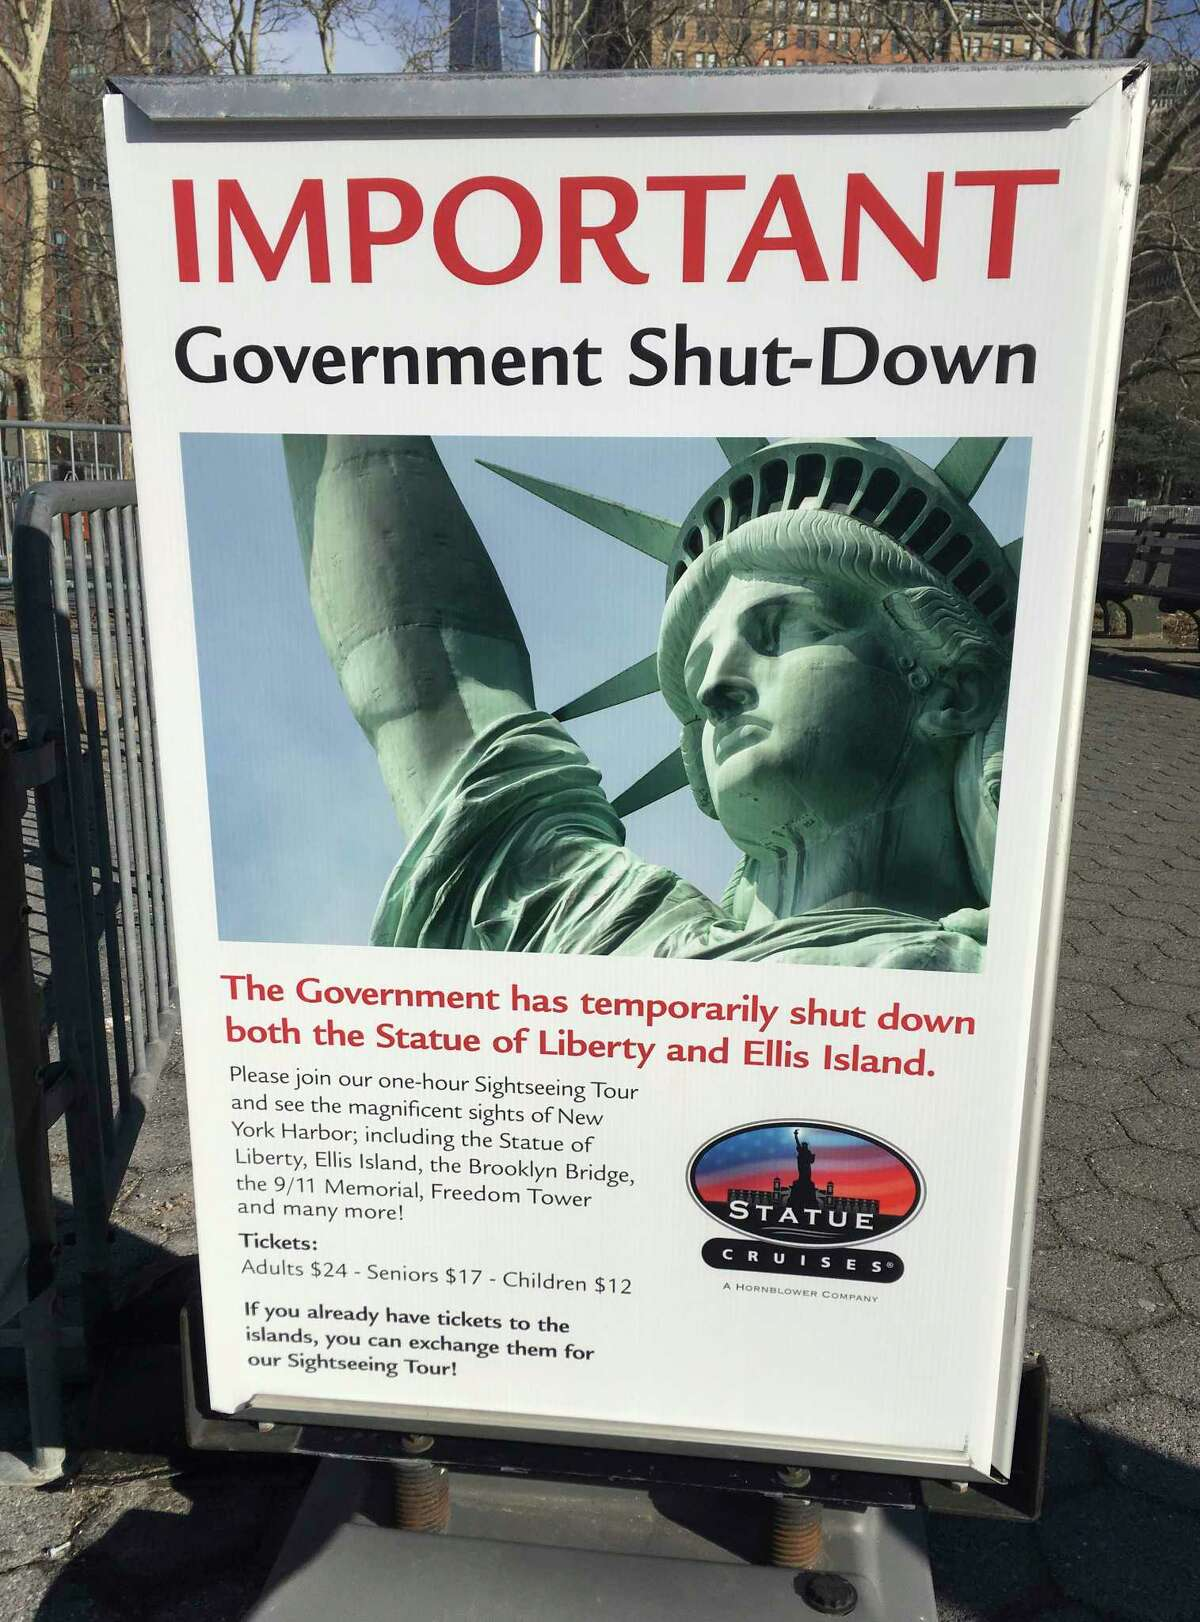 The sign at the Ellis Island ferry cue informs visitors that there was no access to the island or to the Statue of Liberty, due to the government shutdown, Saturday, Jan. 20, 2018 in New York. When a dispute in Congress over spending and immigration forced scores of federal government agencies and outposts to close their doors, the Statue of Liberty and Ellis Island had to turn away visitors, due to what the National Park Service described as